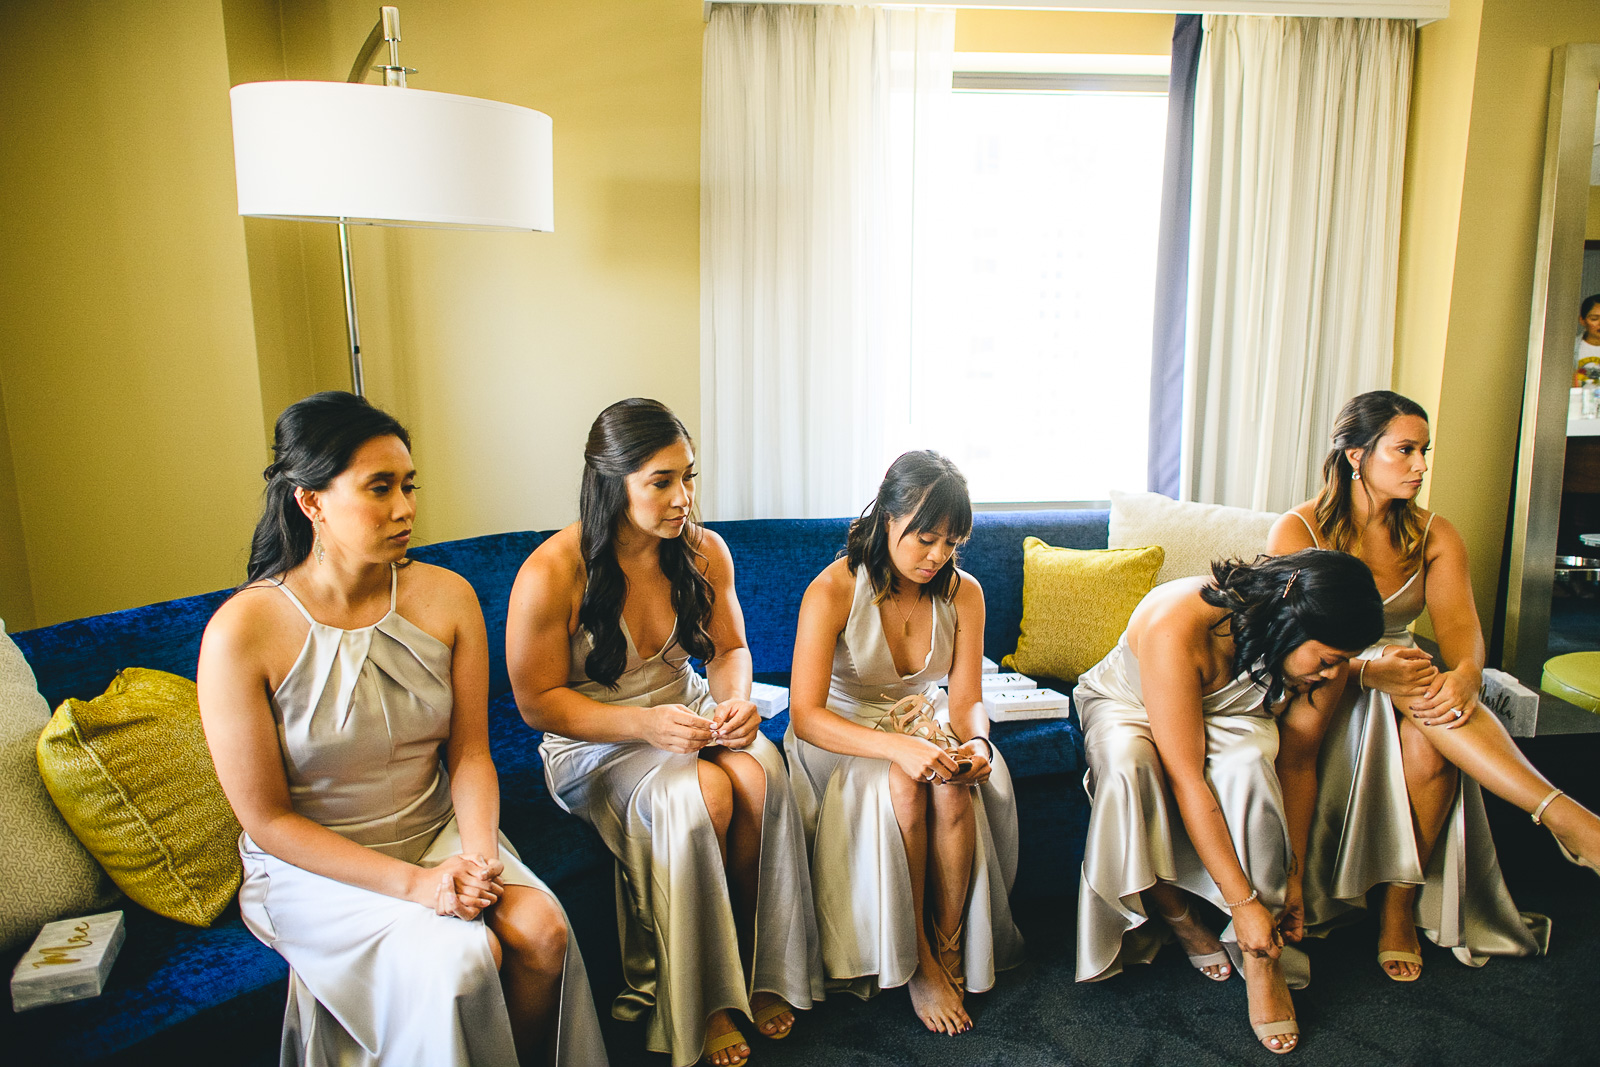 18 renaissance hotel chicago wedding photos - Renaissance Hotel Chicago Wedding Photos // Francine + RJ